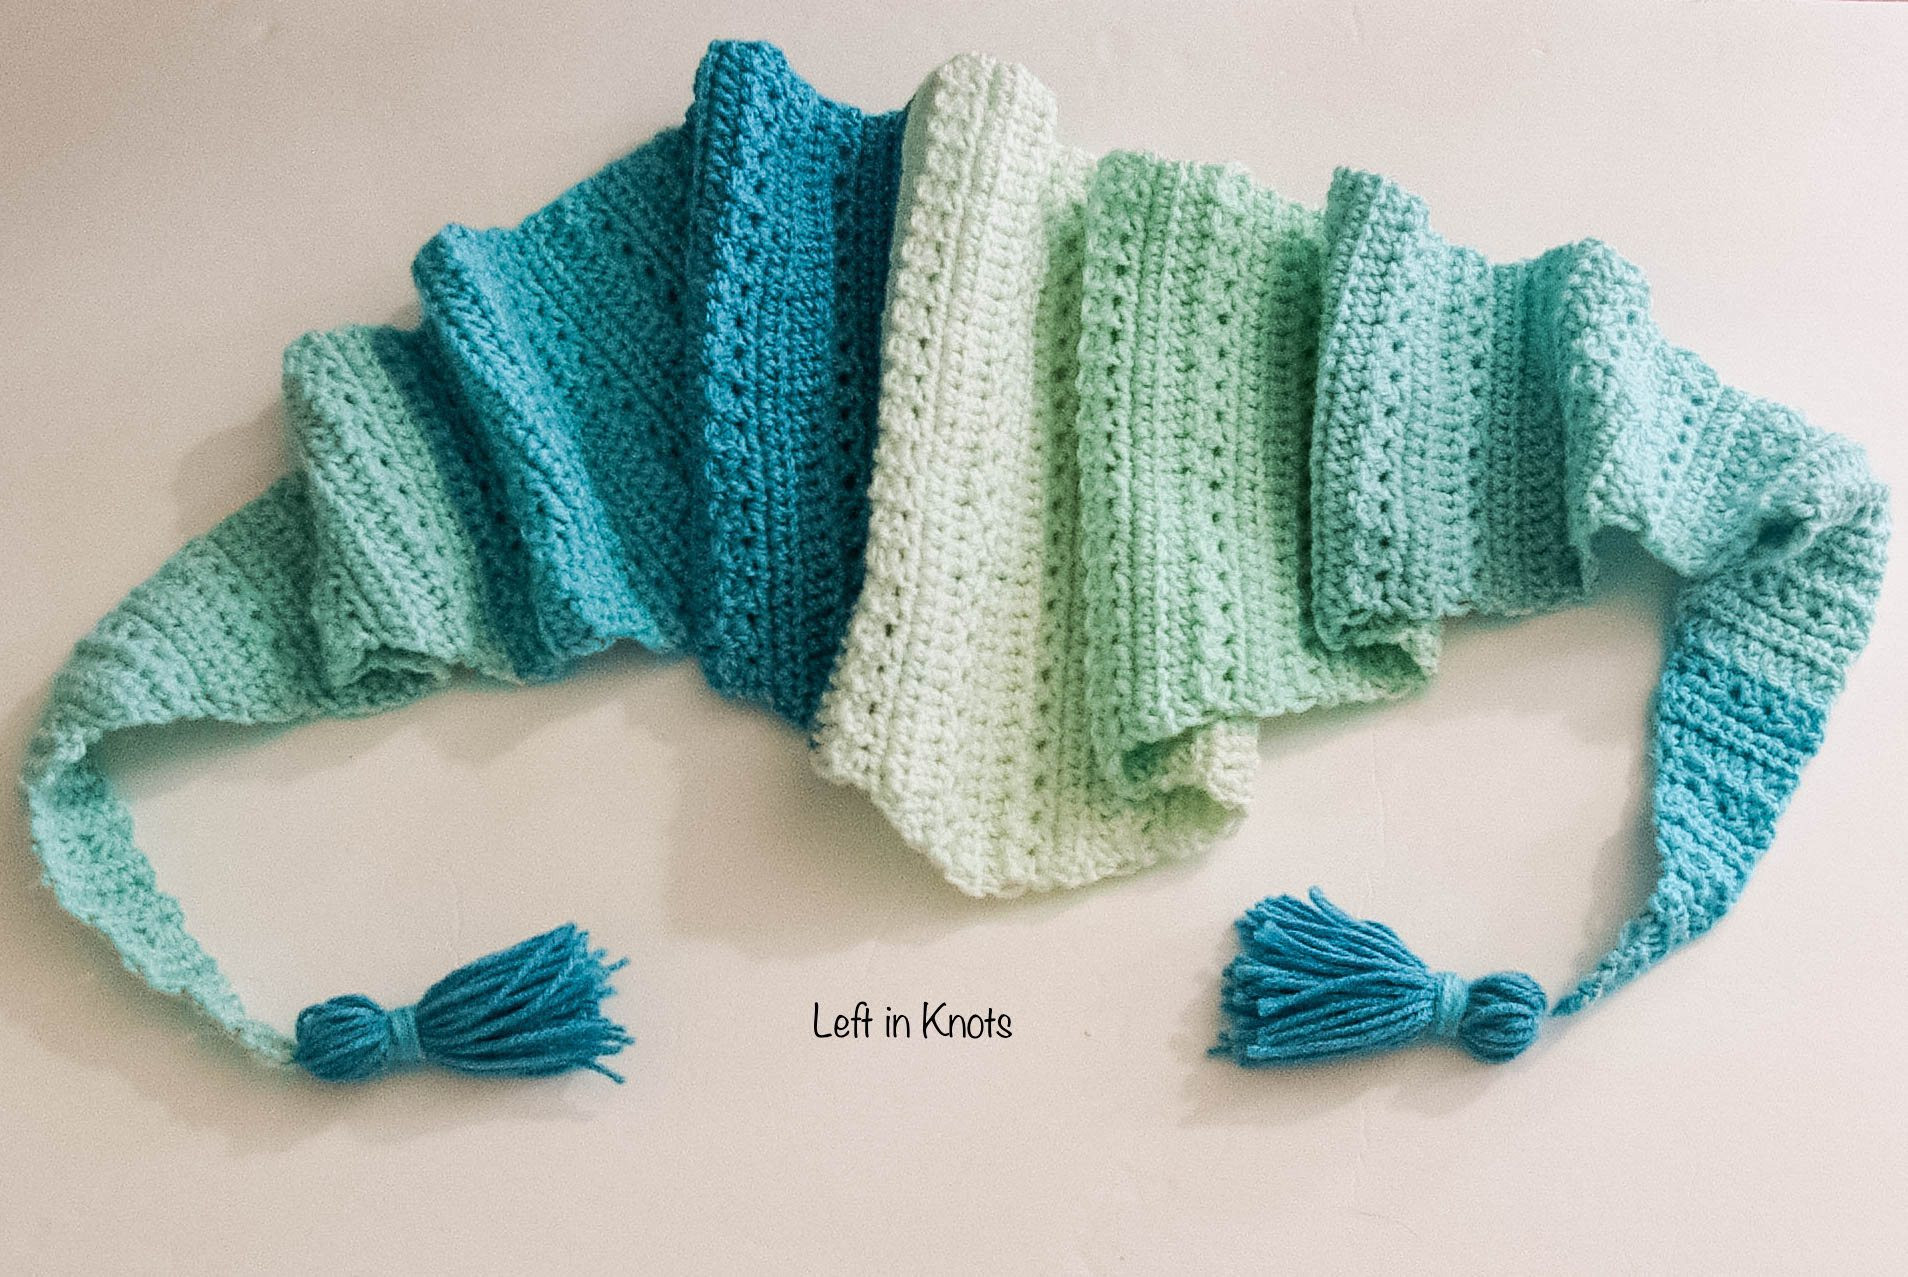 Lovely Do You Need Caron Cakes Pattern Ideas Stop Here First Caron Patterns Of Charming 48 Pics Caron Patterns